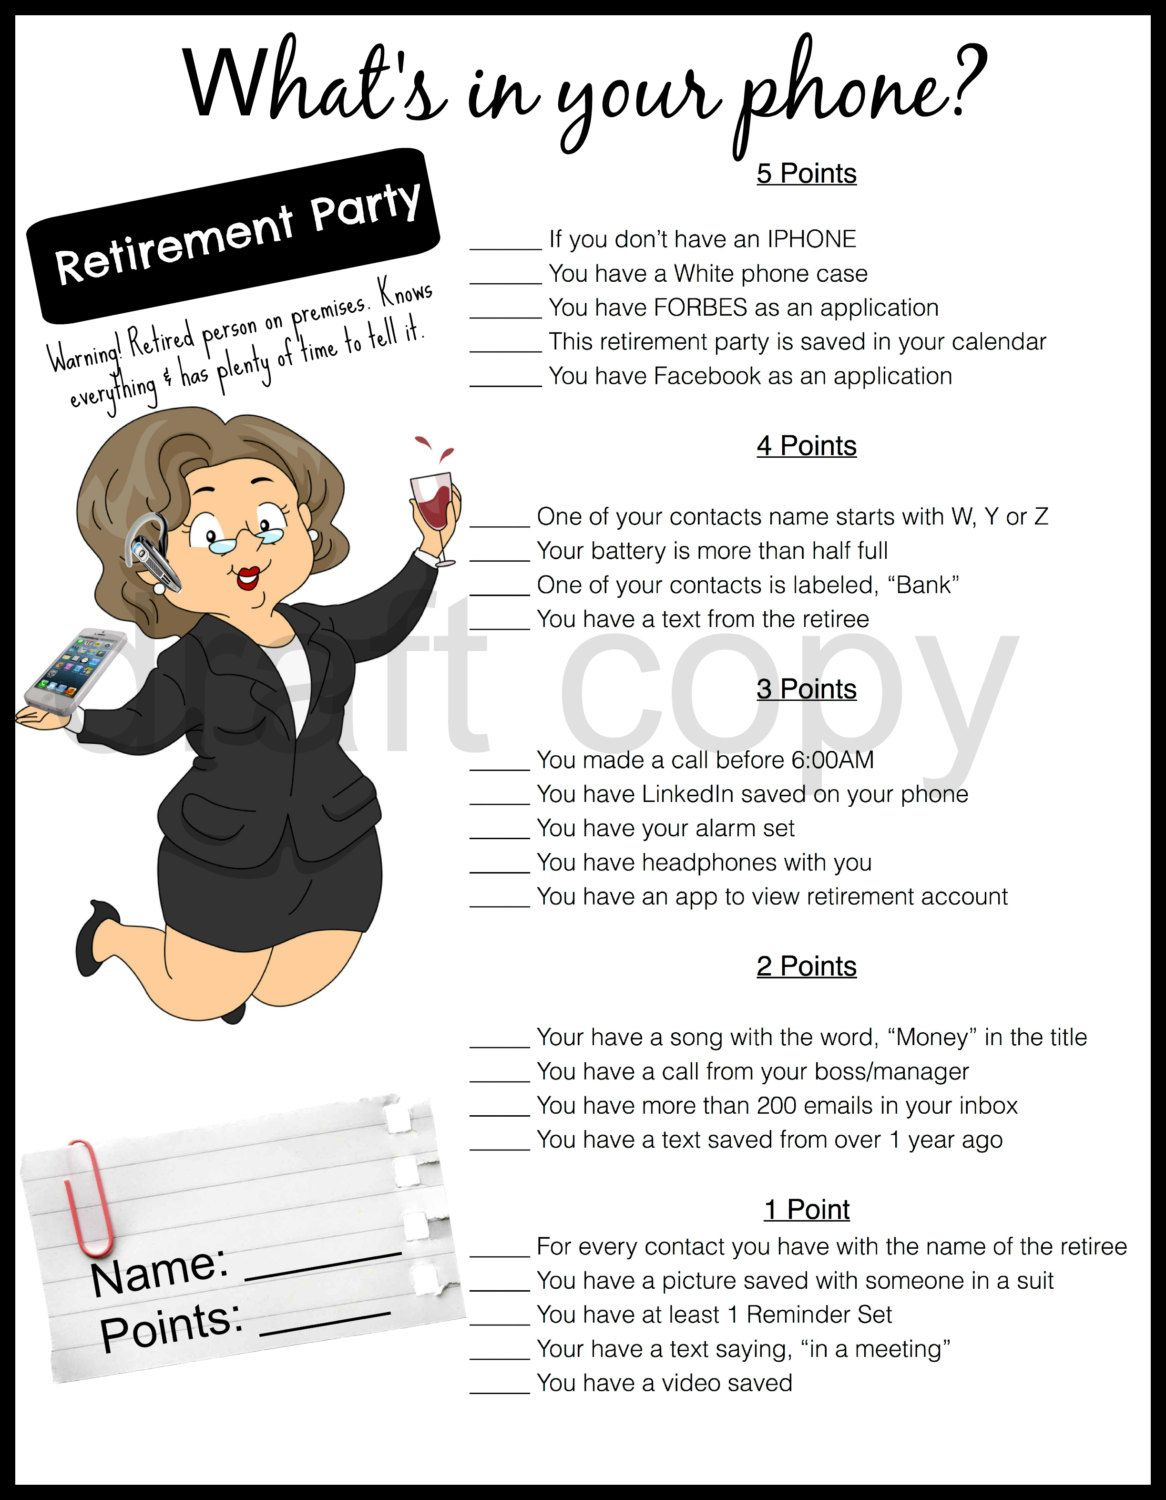 Retirement Party Game-Whats In Your Phone | Retirement | Pinterest - Retirement Party Games Free Printable